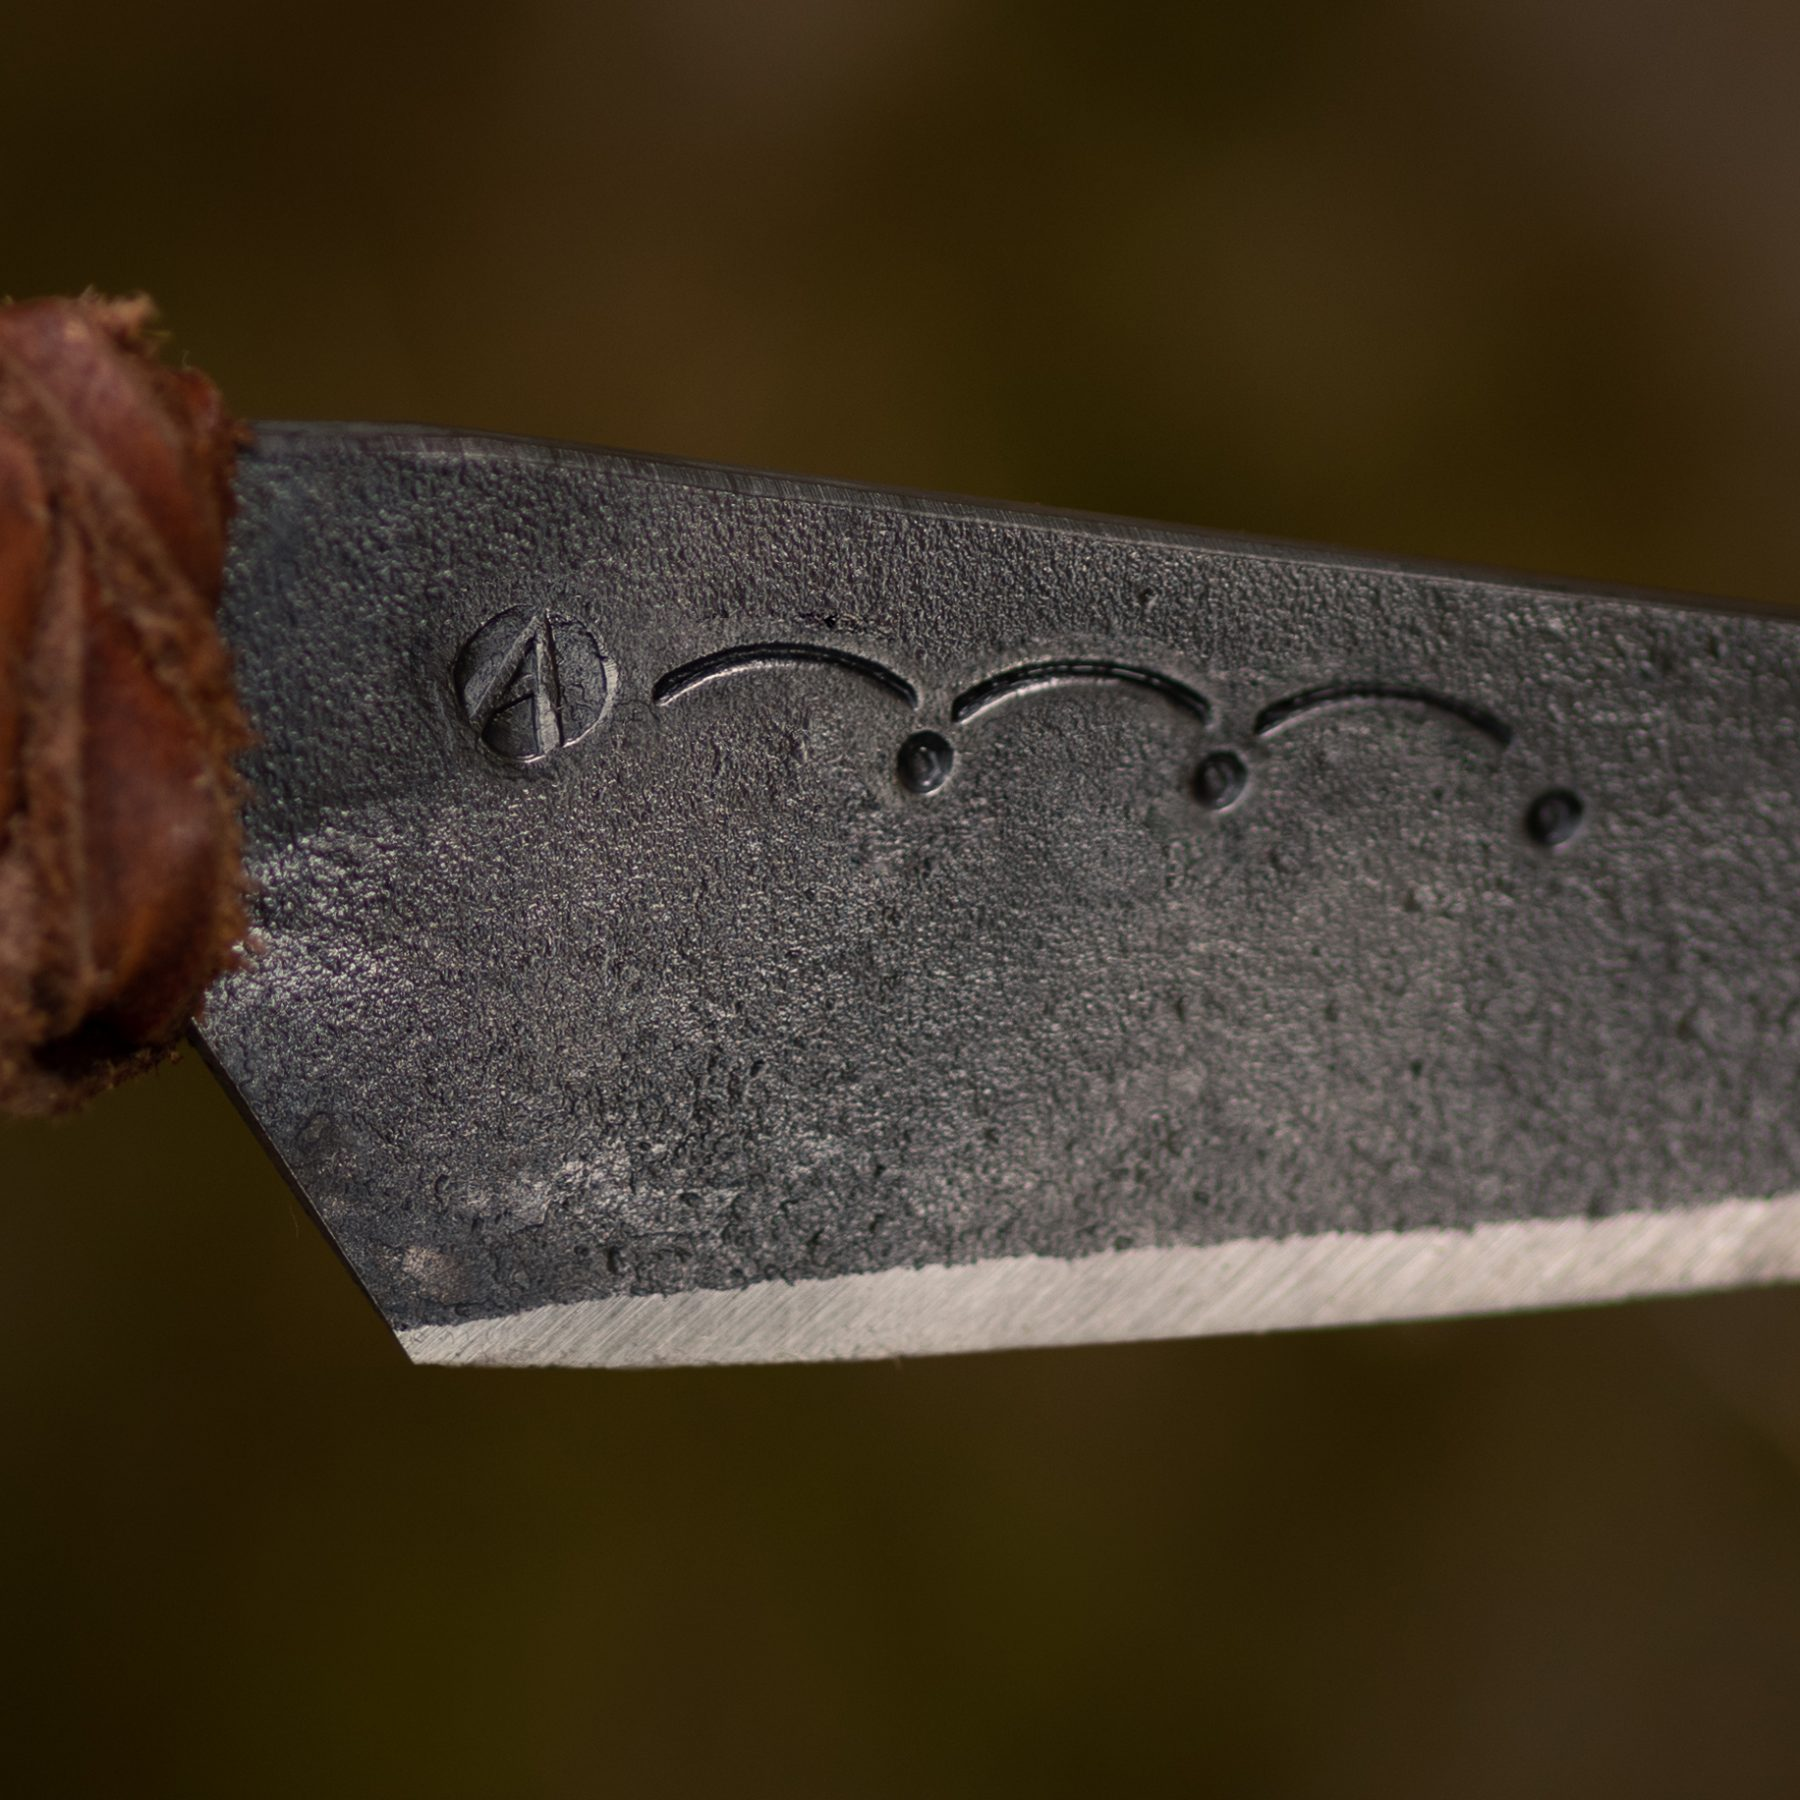 Ornaments var. 1 on a blade